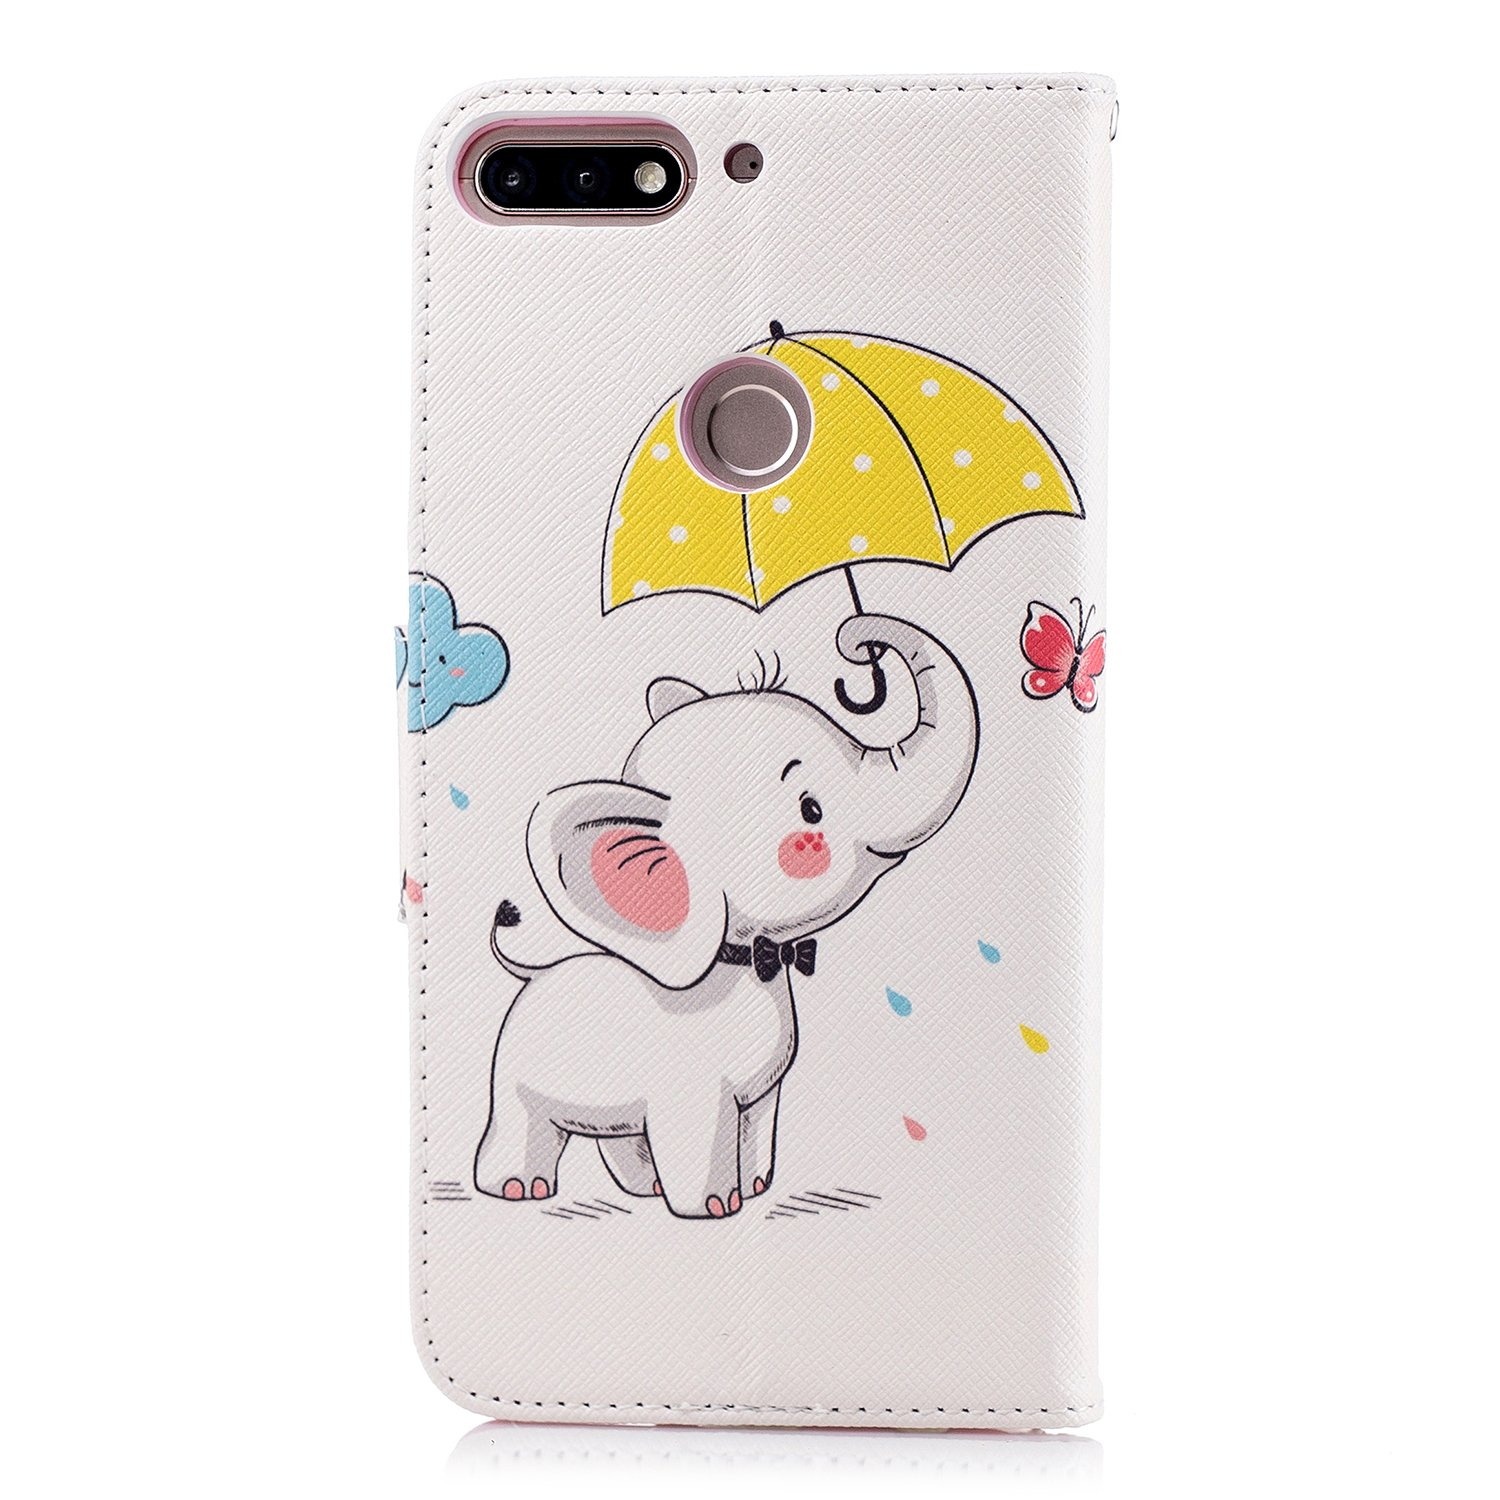 Honor 7C LOBFE11441#8 Huawei Y7 2018 Lomogo Leather Wallet Case with Kickstand Card Holder Shockproof Flip Case Cover for Huawei Y7 2018 Y7 Prime 2018 Case